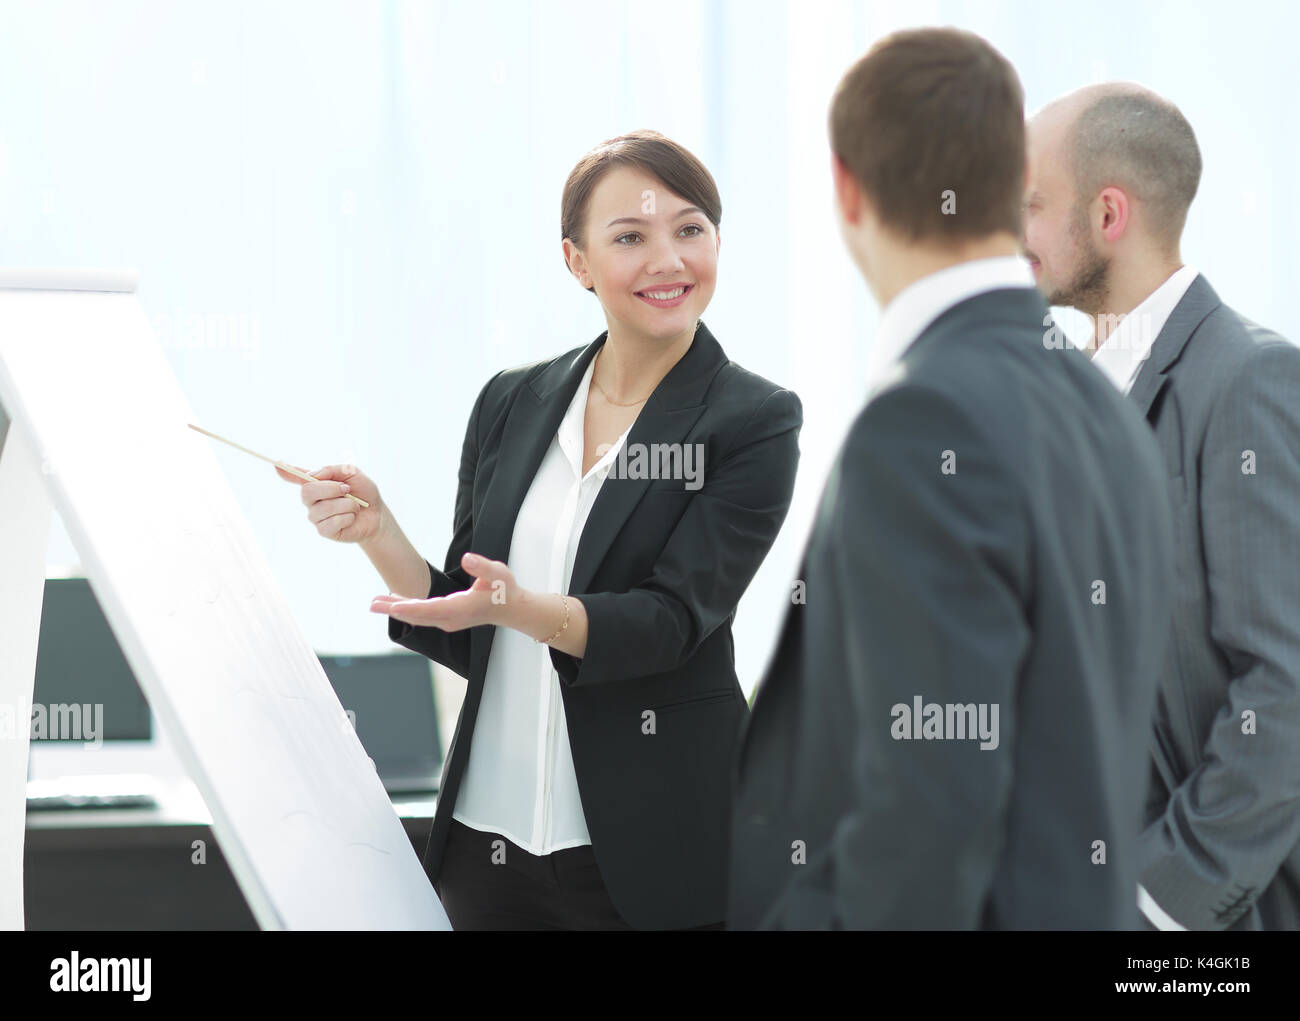 Business colleagues in conference meeting room - Stock Image